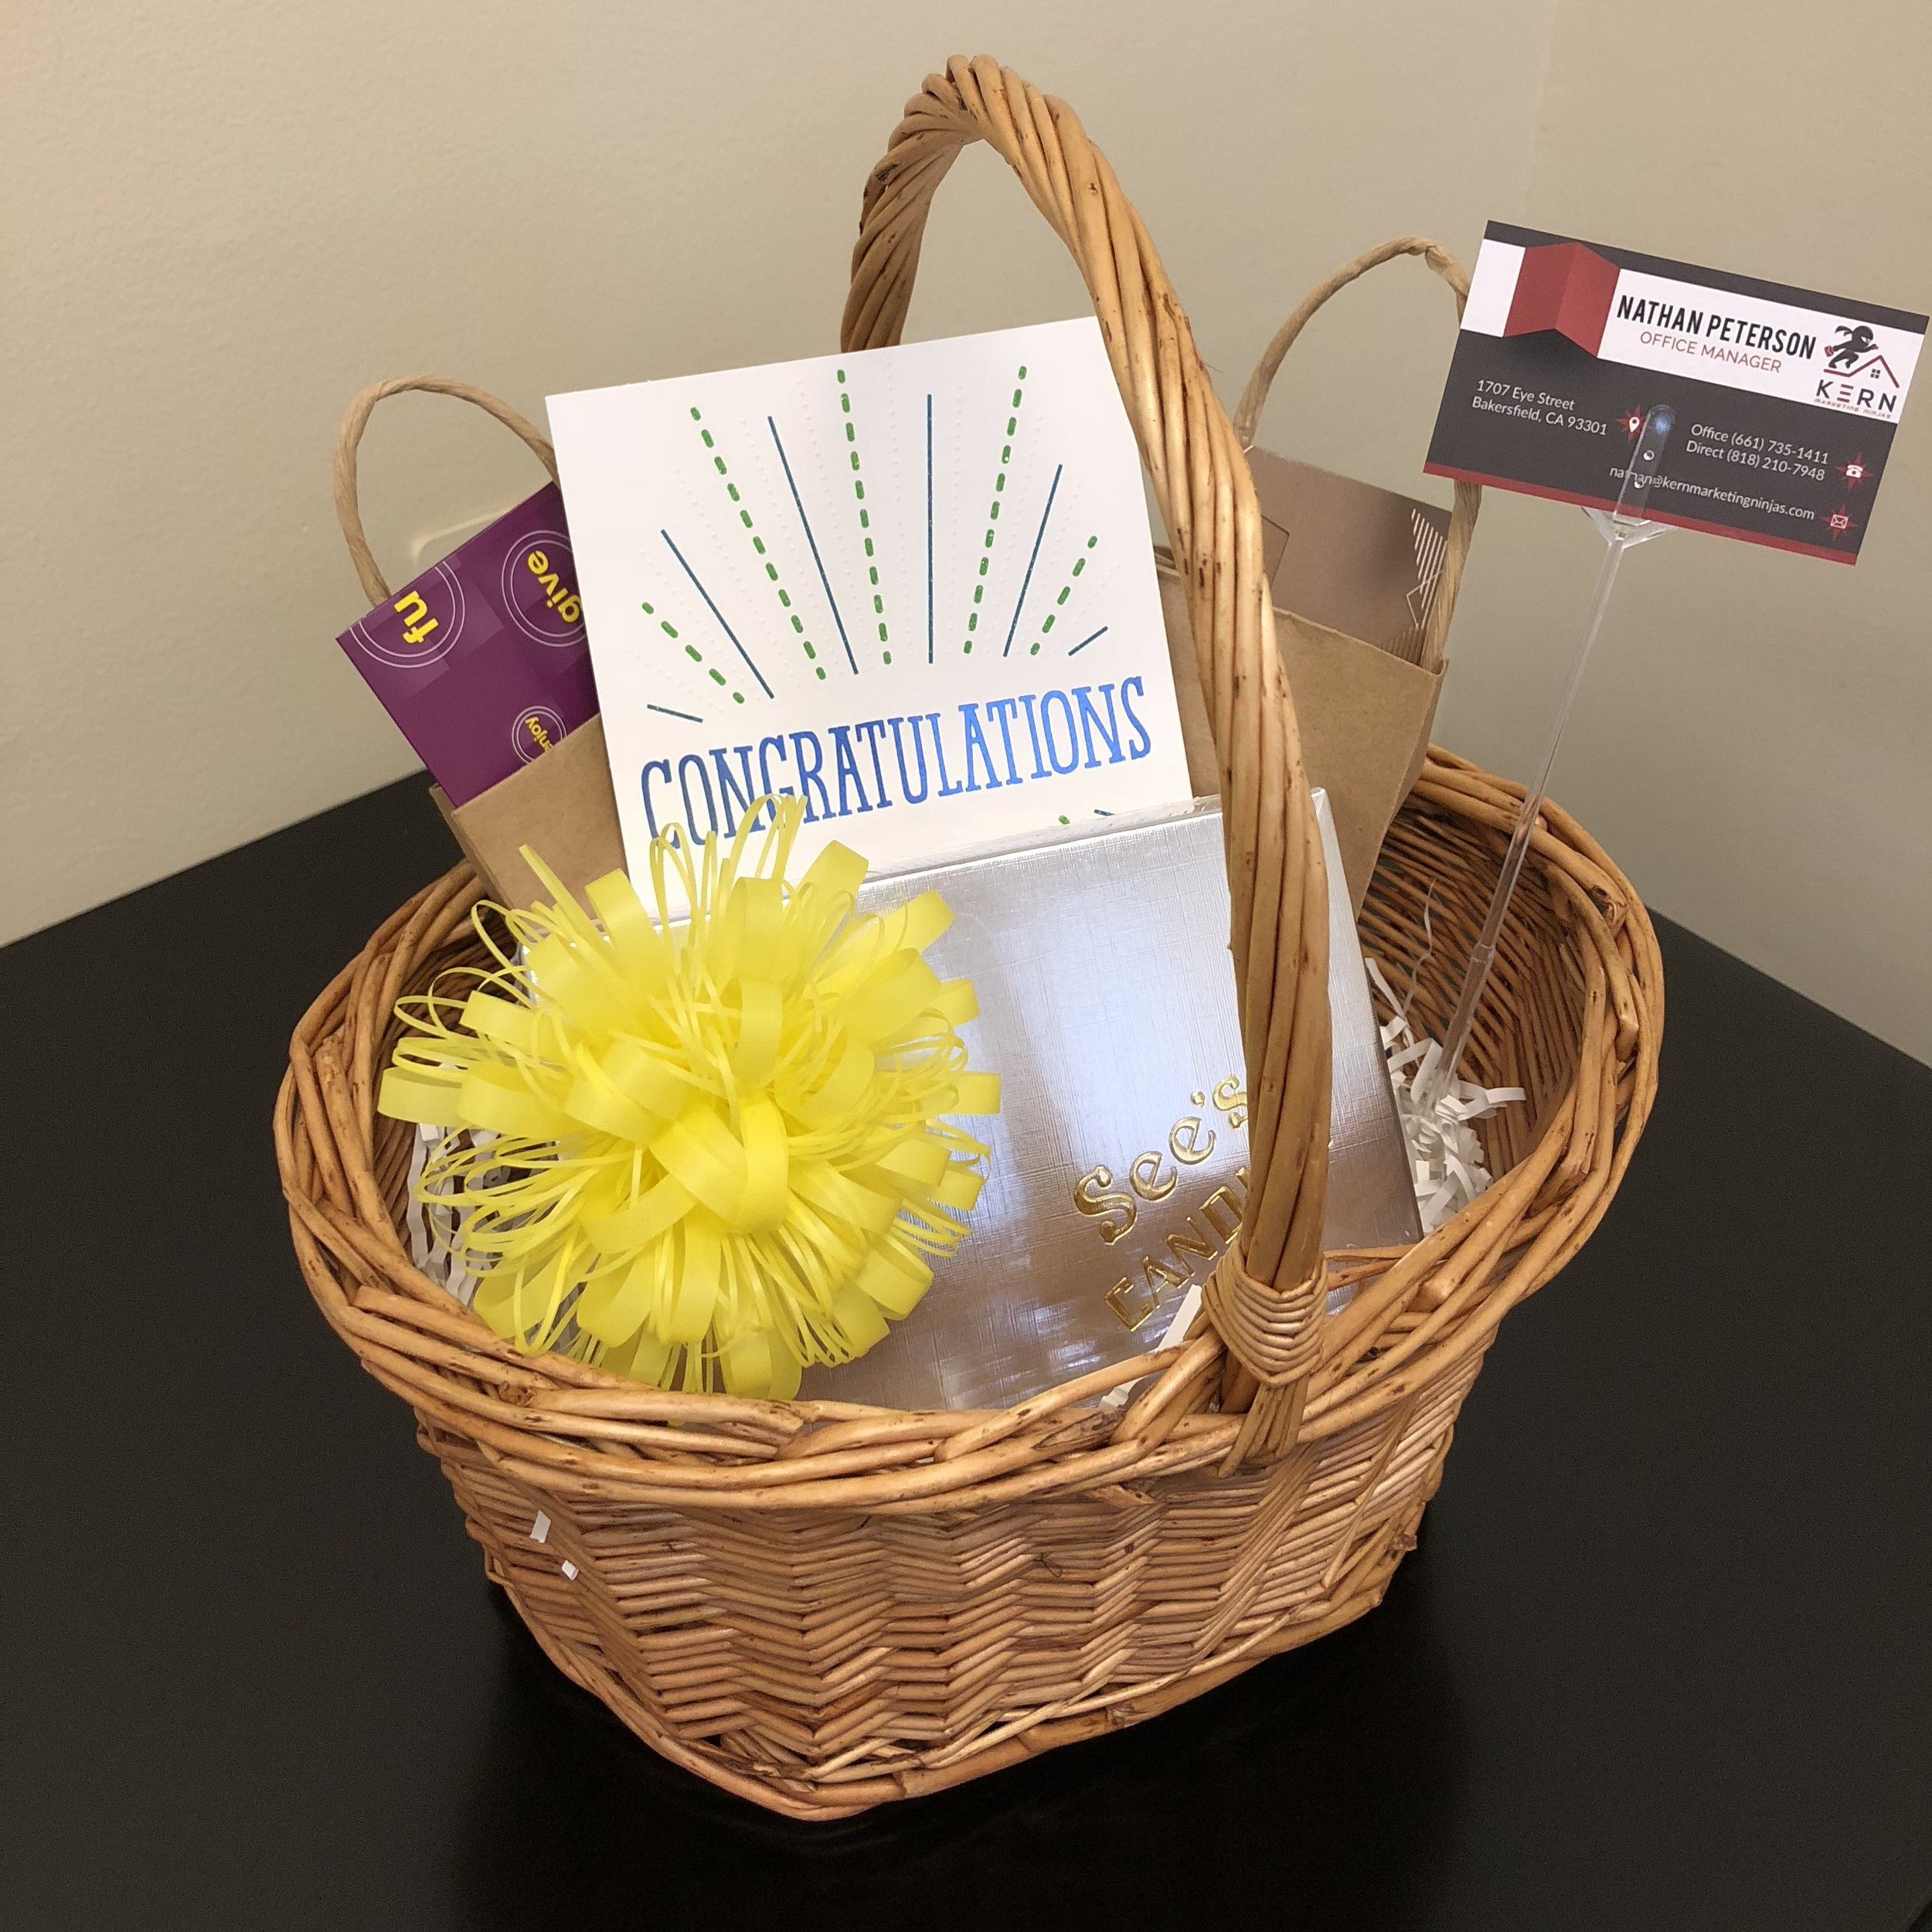 Client Gift Basket - Congratulate your clients with one of our wonderful gift baskets! It's a great way to show you care and is filled with the things they will actually appreciate.